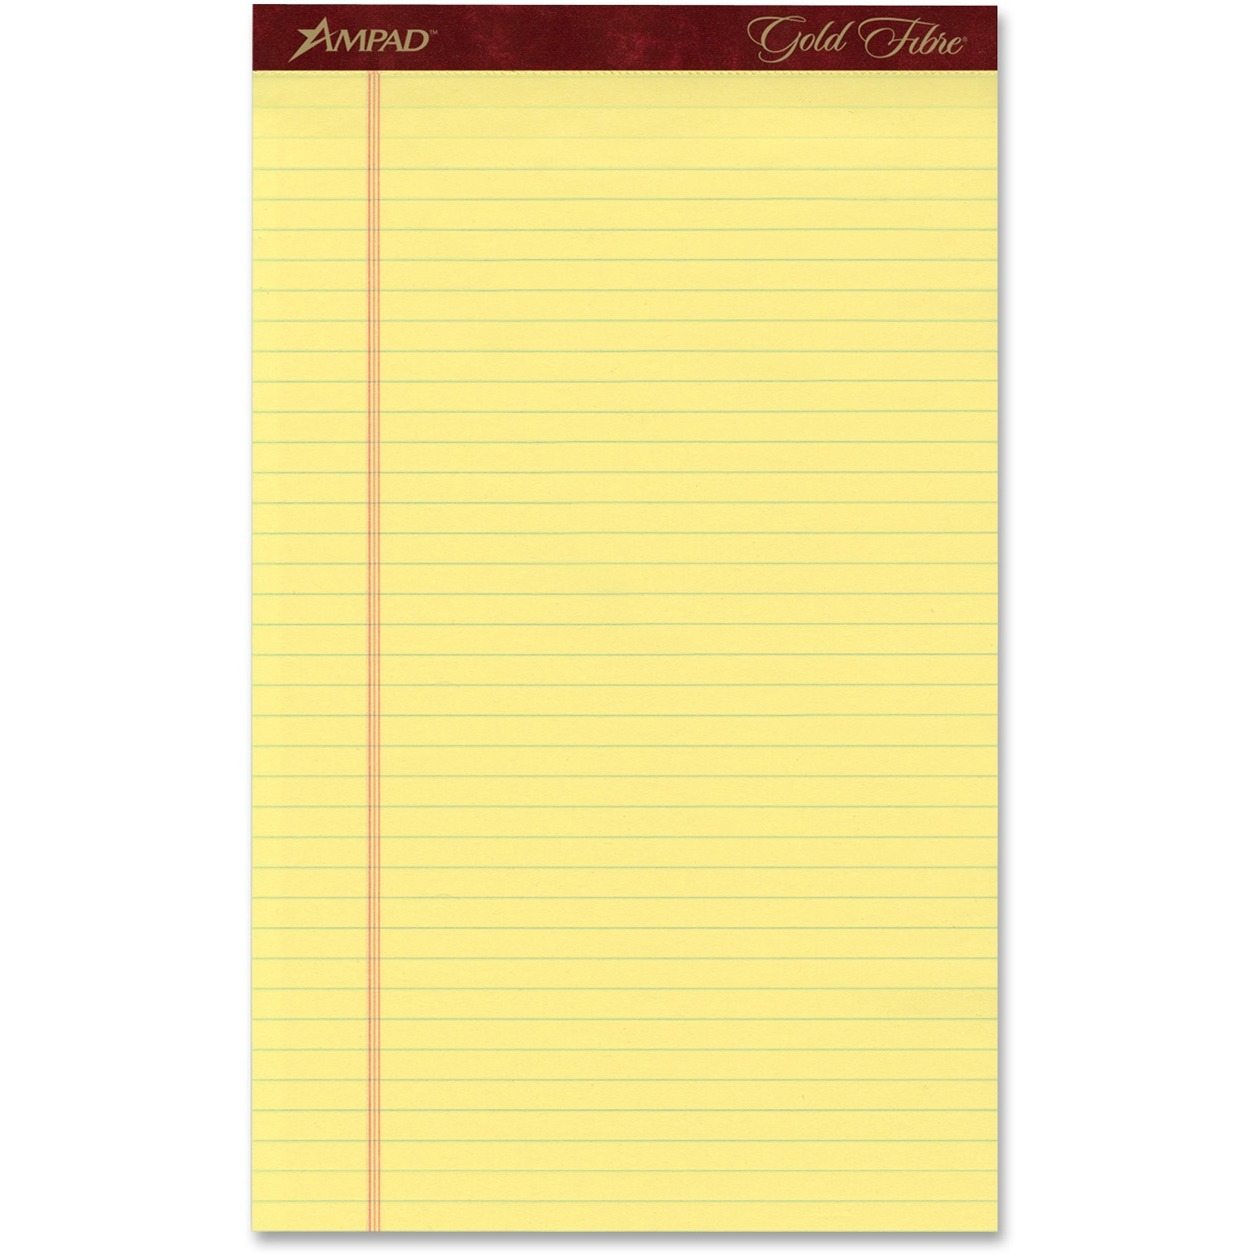 Ampad Gold Fibre Premium Jr. Legal Writing Pads by TOPS Products